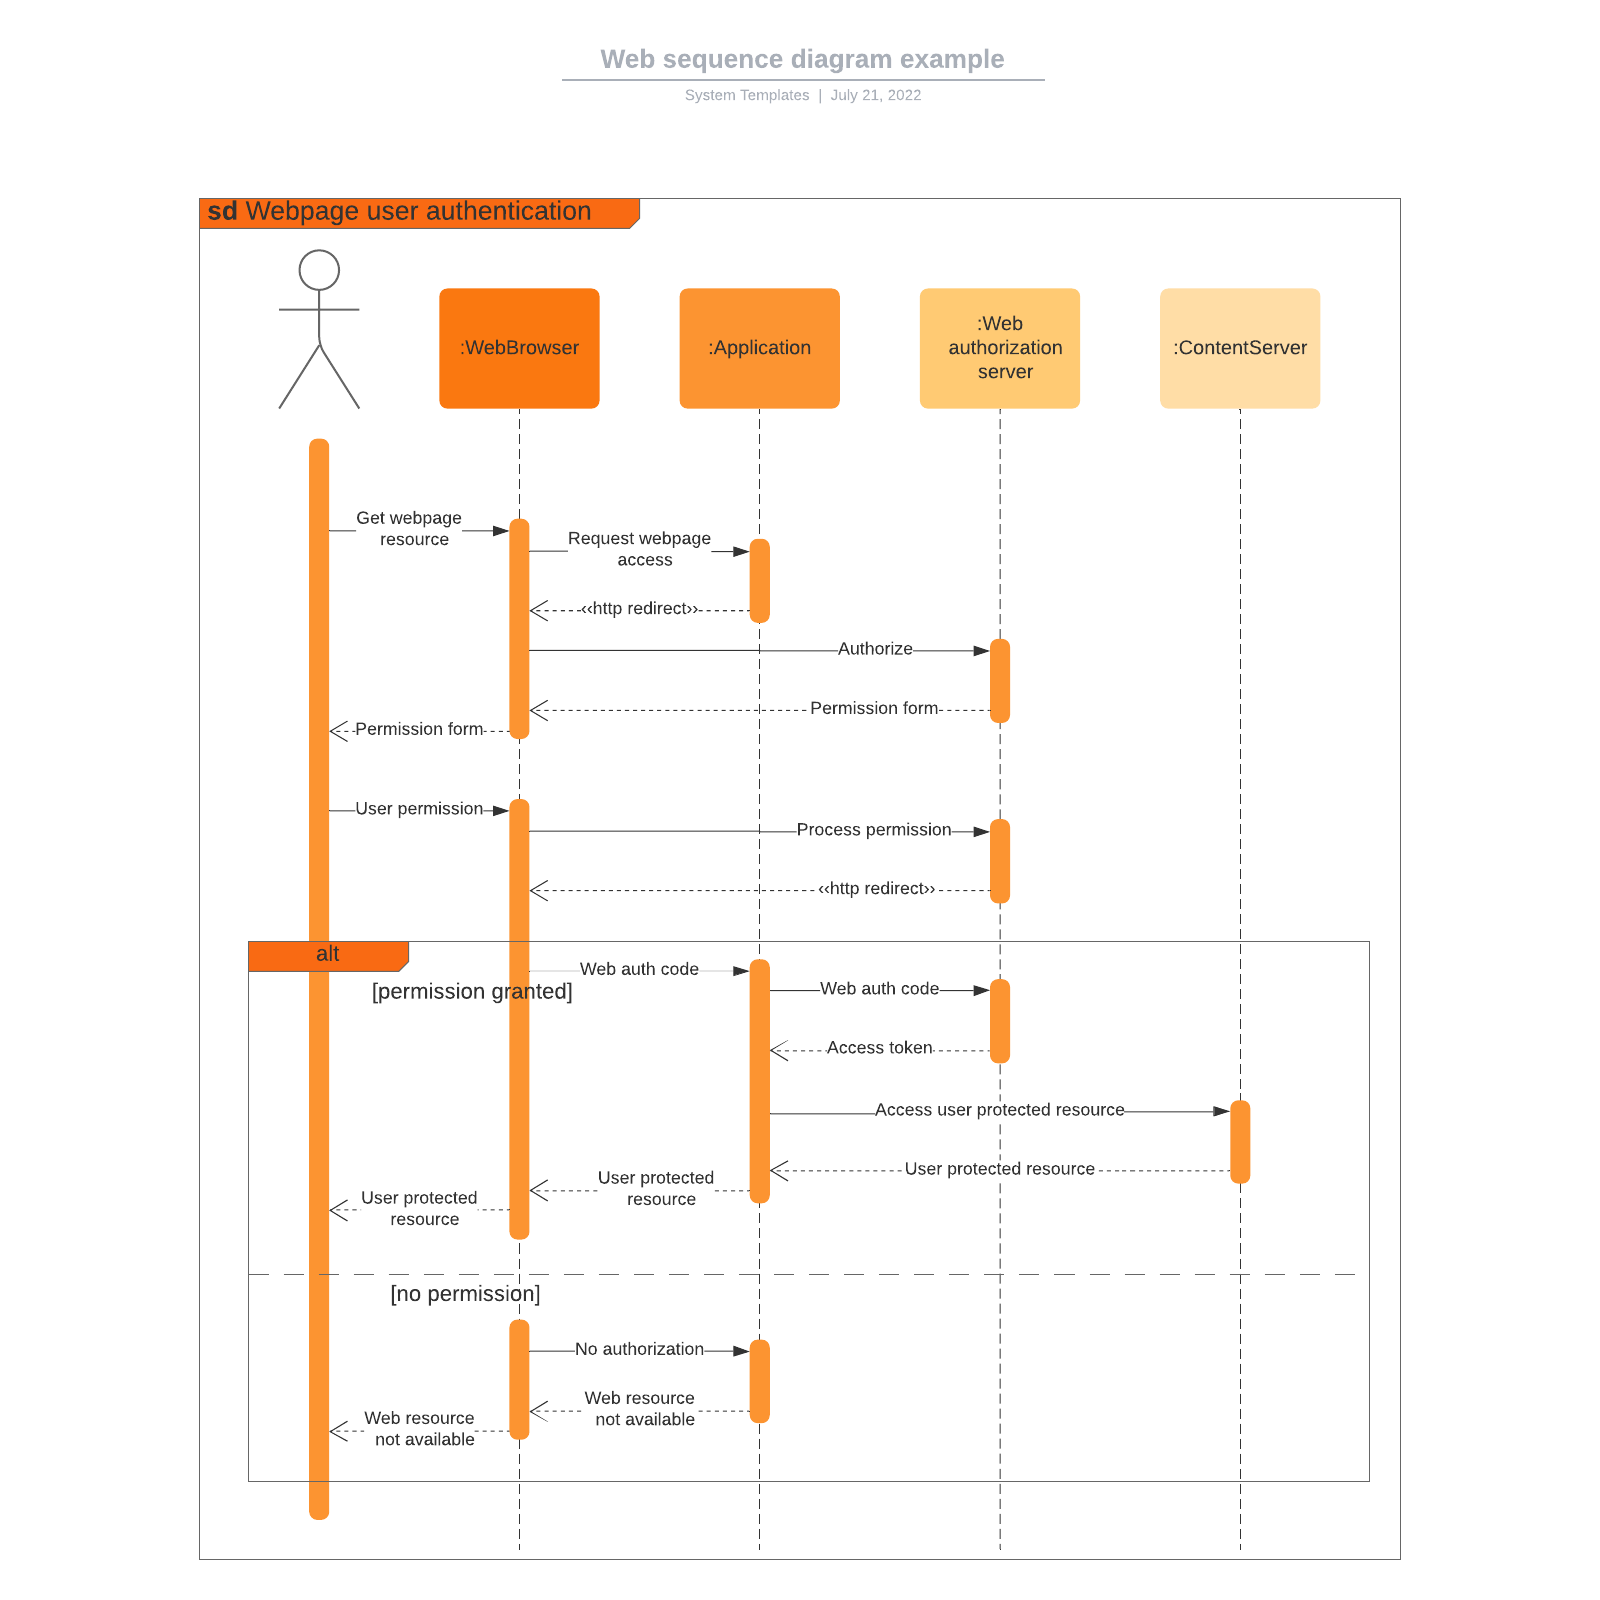 Web sequence diagram example